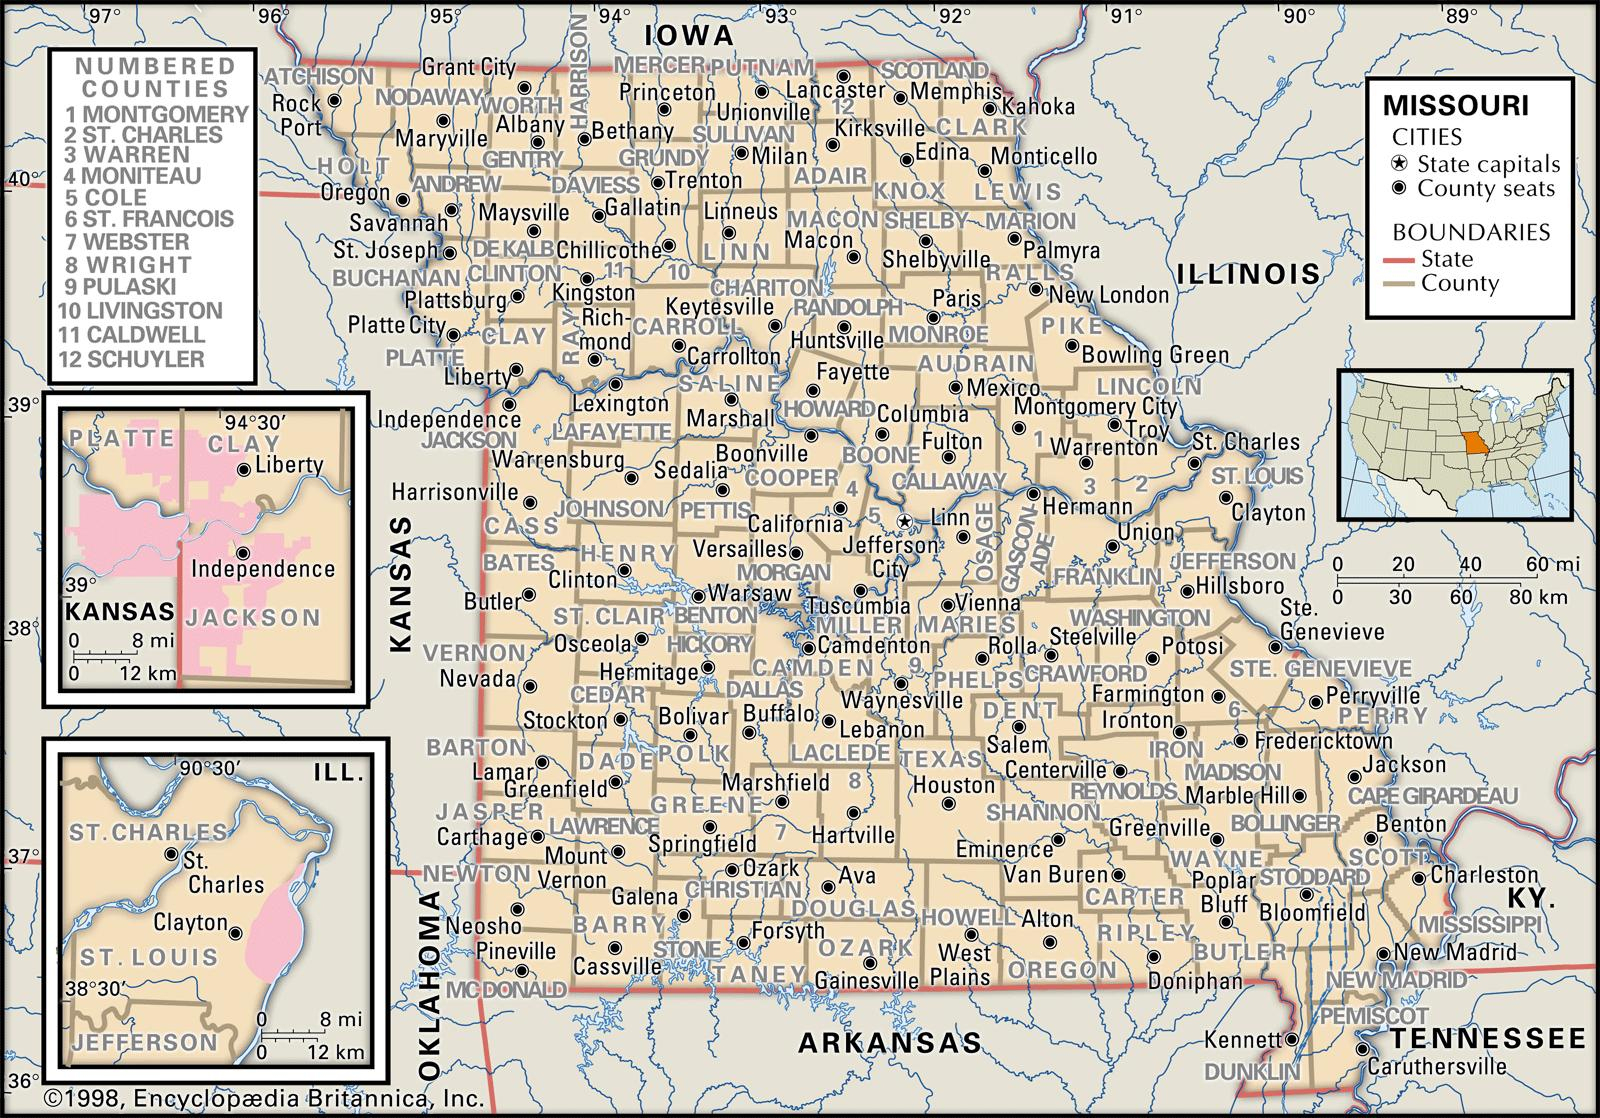 State And County Maps Of Missouri - Texas County Mo Property Map